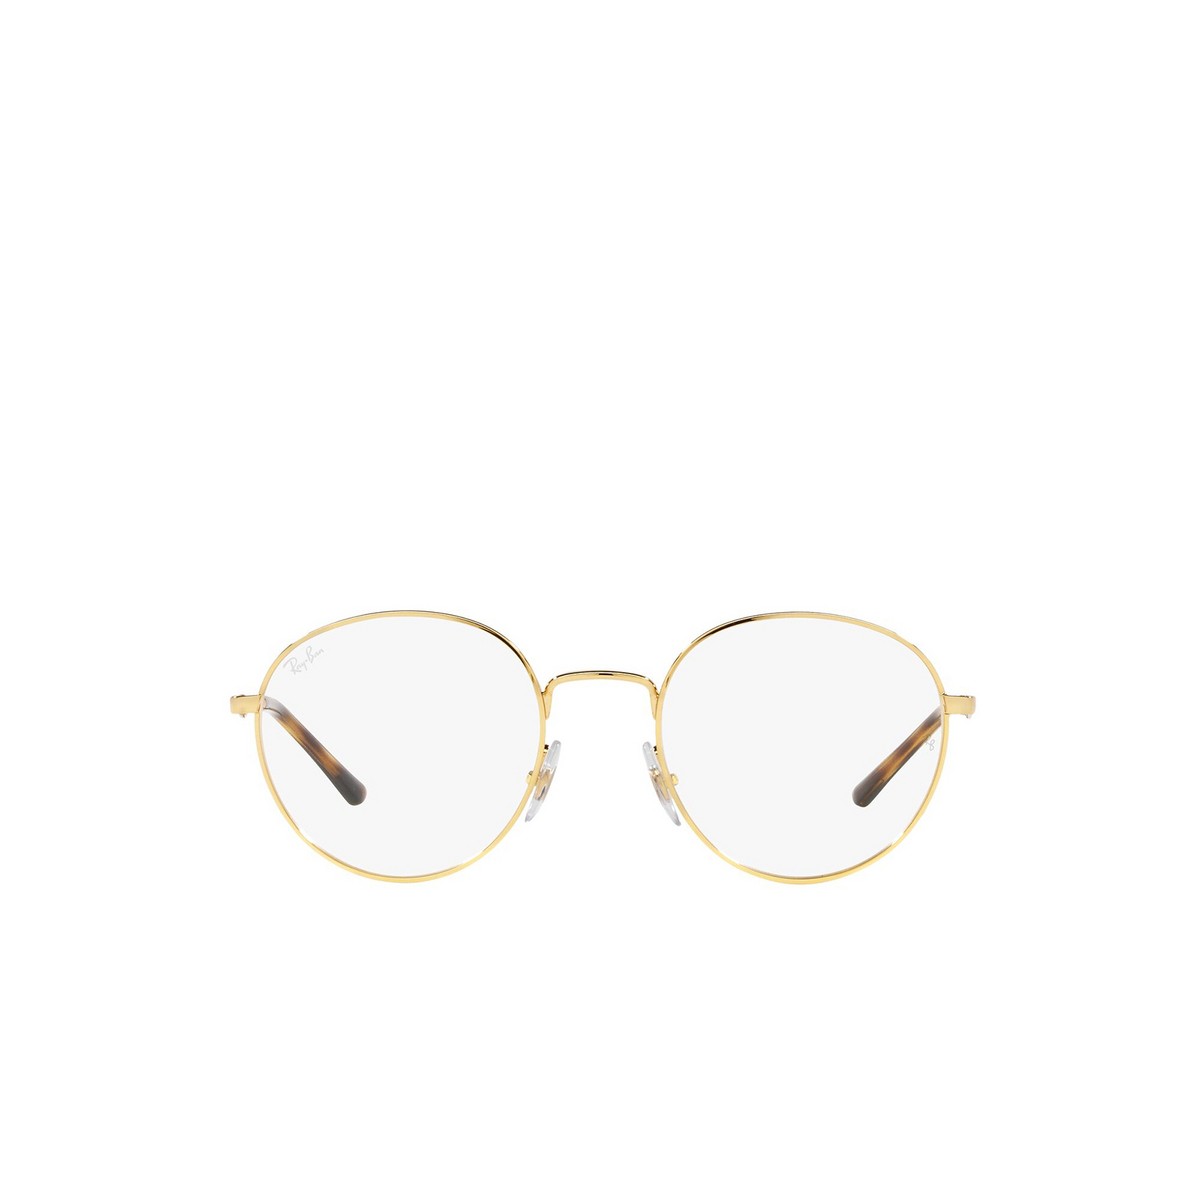 Ray-Ban® Round Eyeglasses: RX3681V color Arista 2500 - front view.